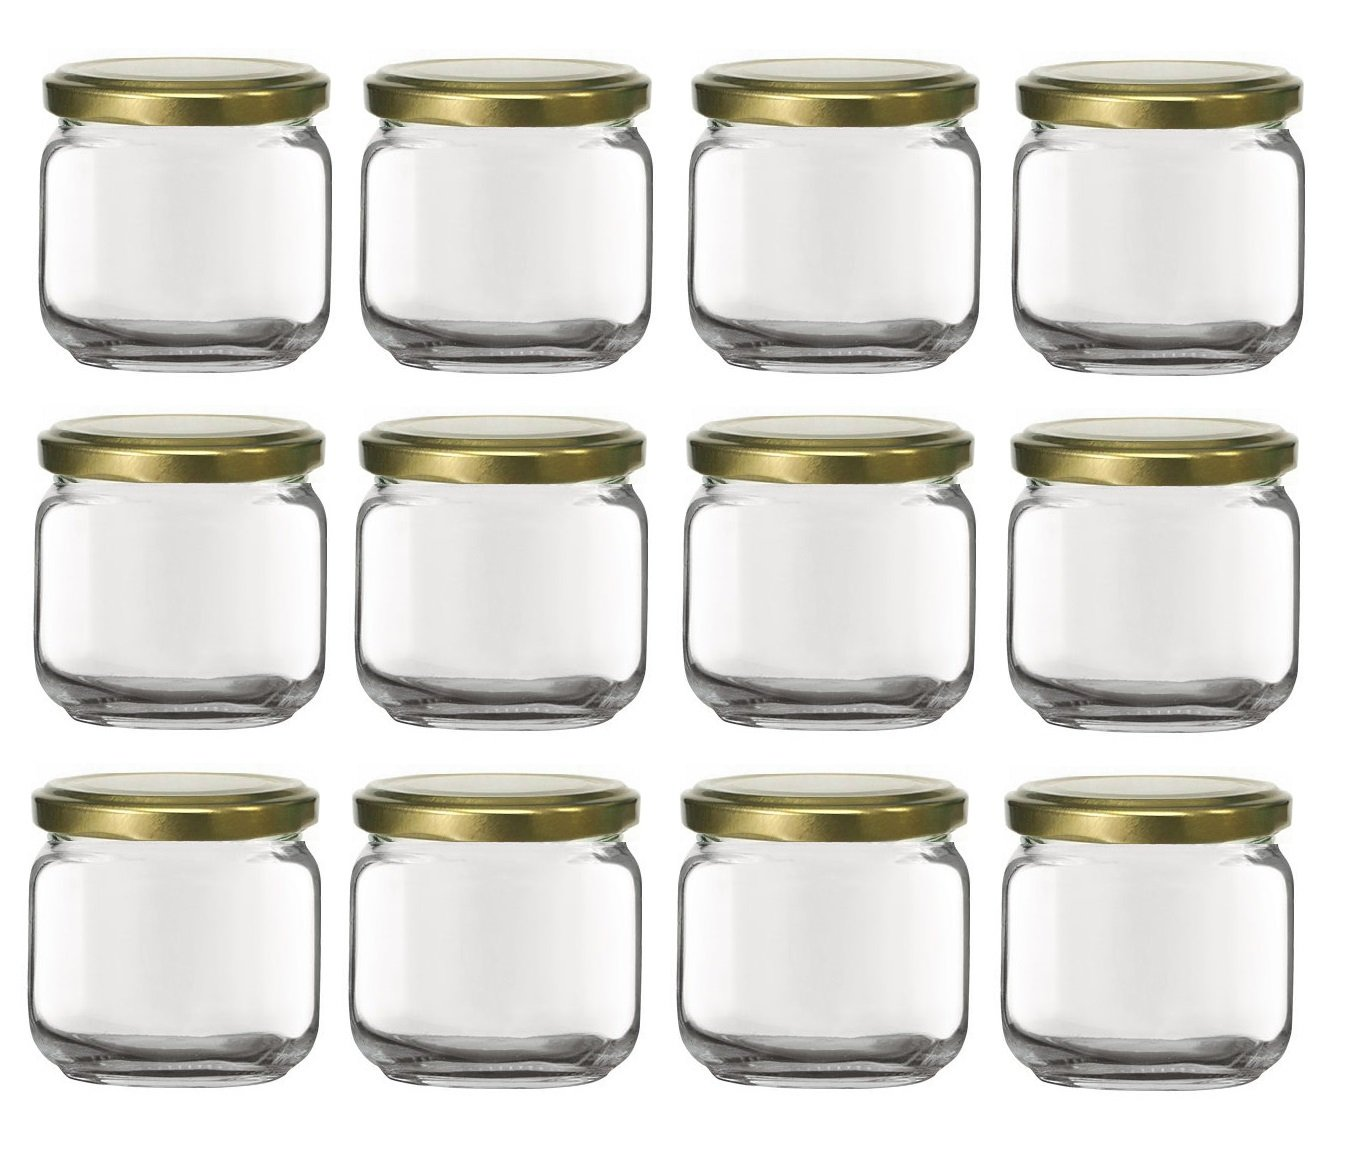 Nakpunar 12 pcs, 6.75 oz Square Glass Jars with Gold Lids - Rounded Edge - Made in Italy (Gold - 12 Jars)